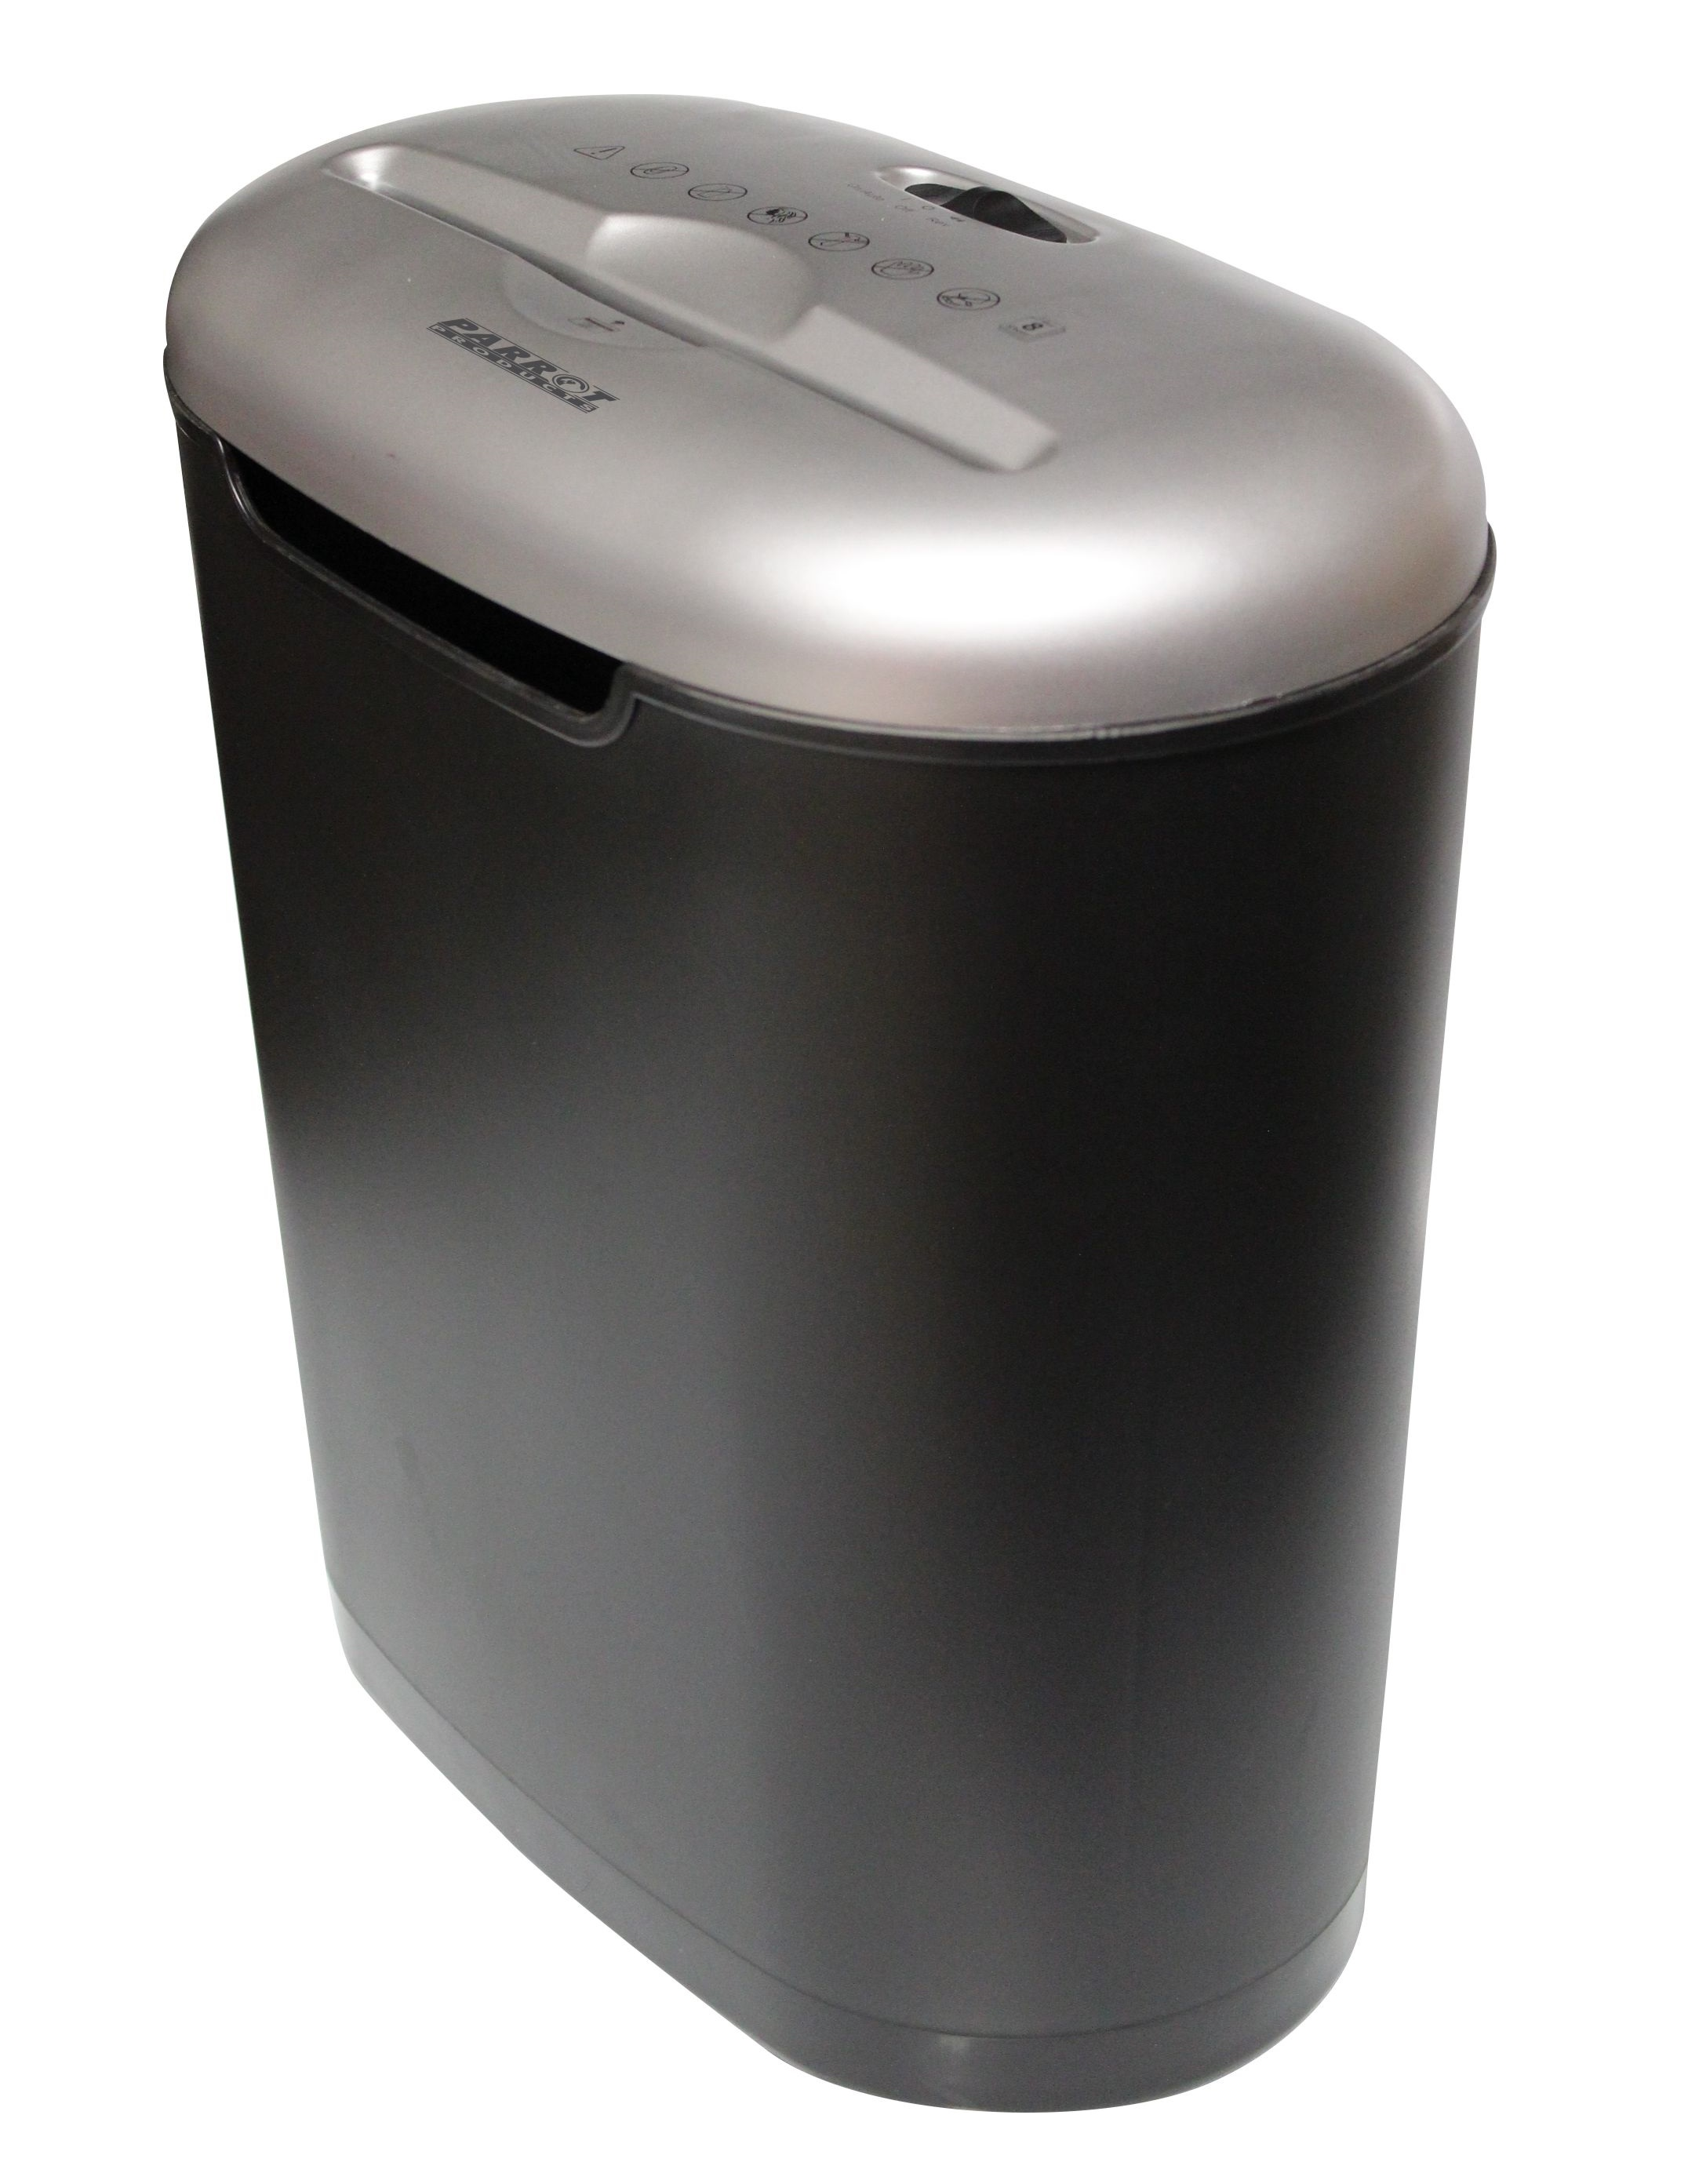 Parrot S200 Paper Shredder